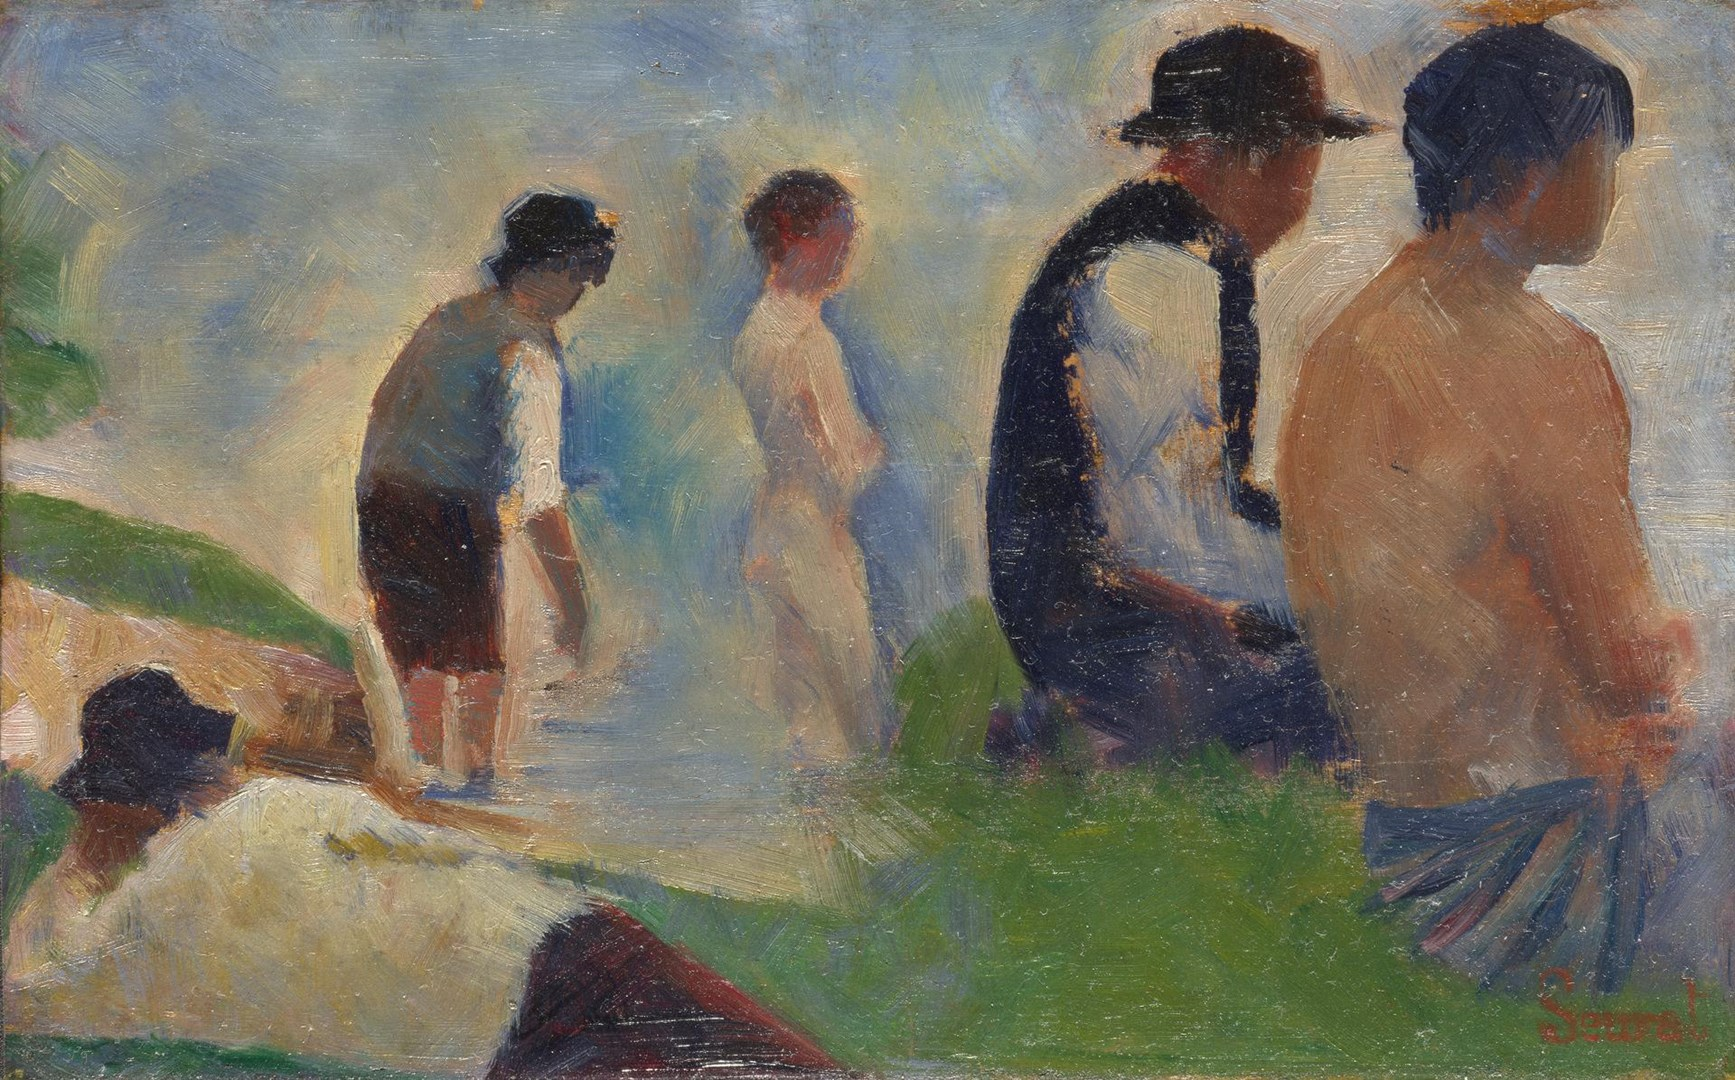 Study for 'Bathers at Asnières' by Georges Seurat